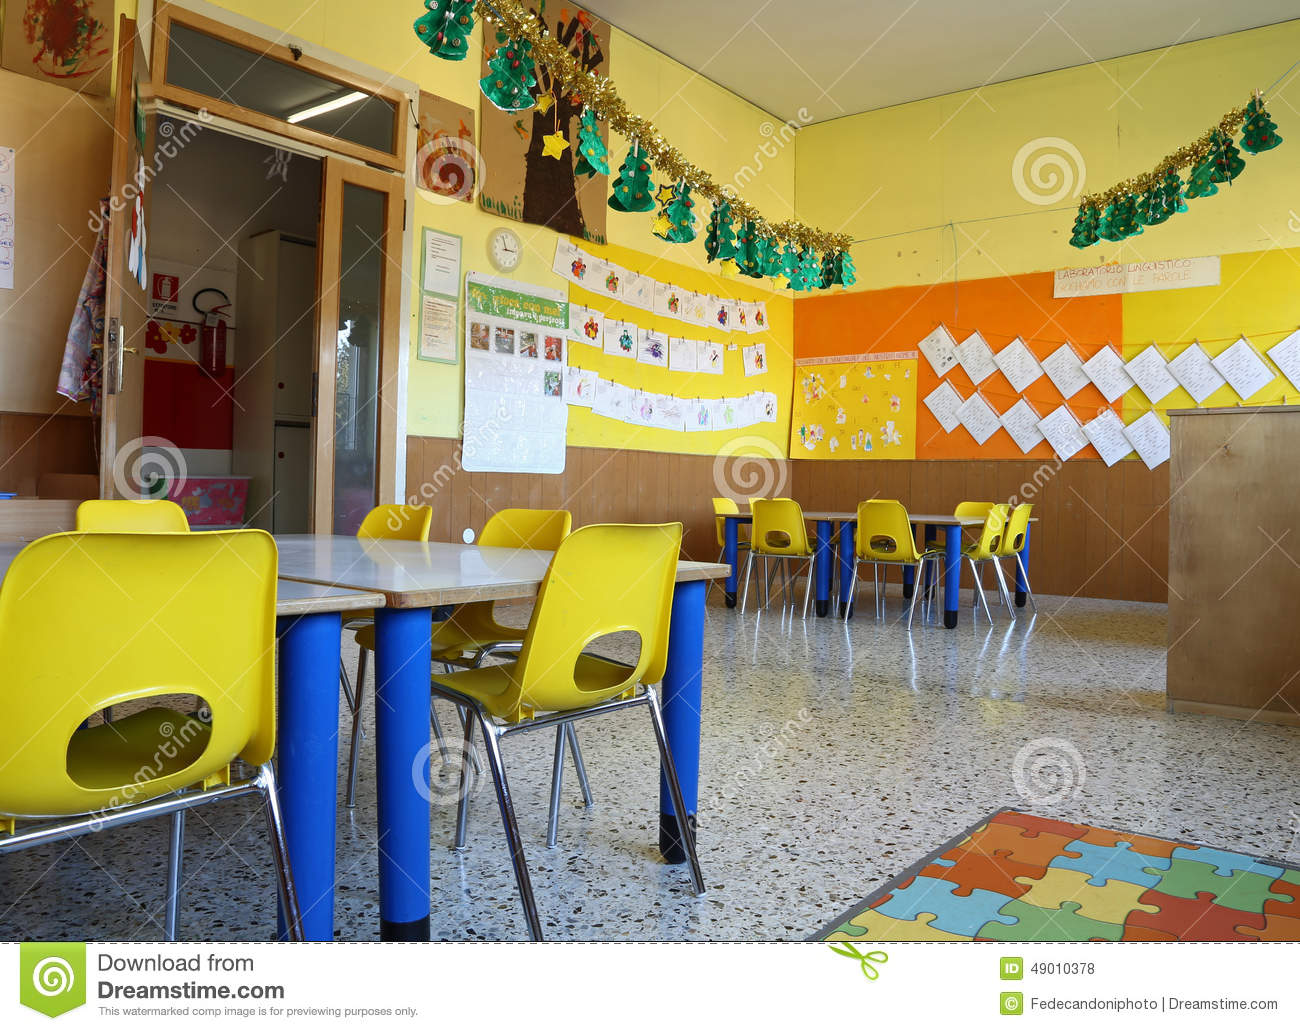 Kindergarten Classroom With Chairs And Table Drawings